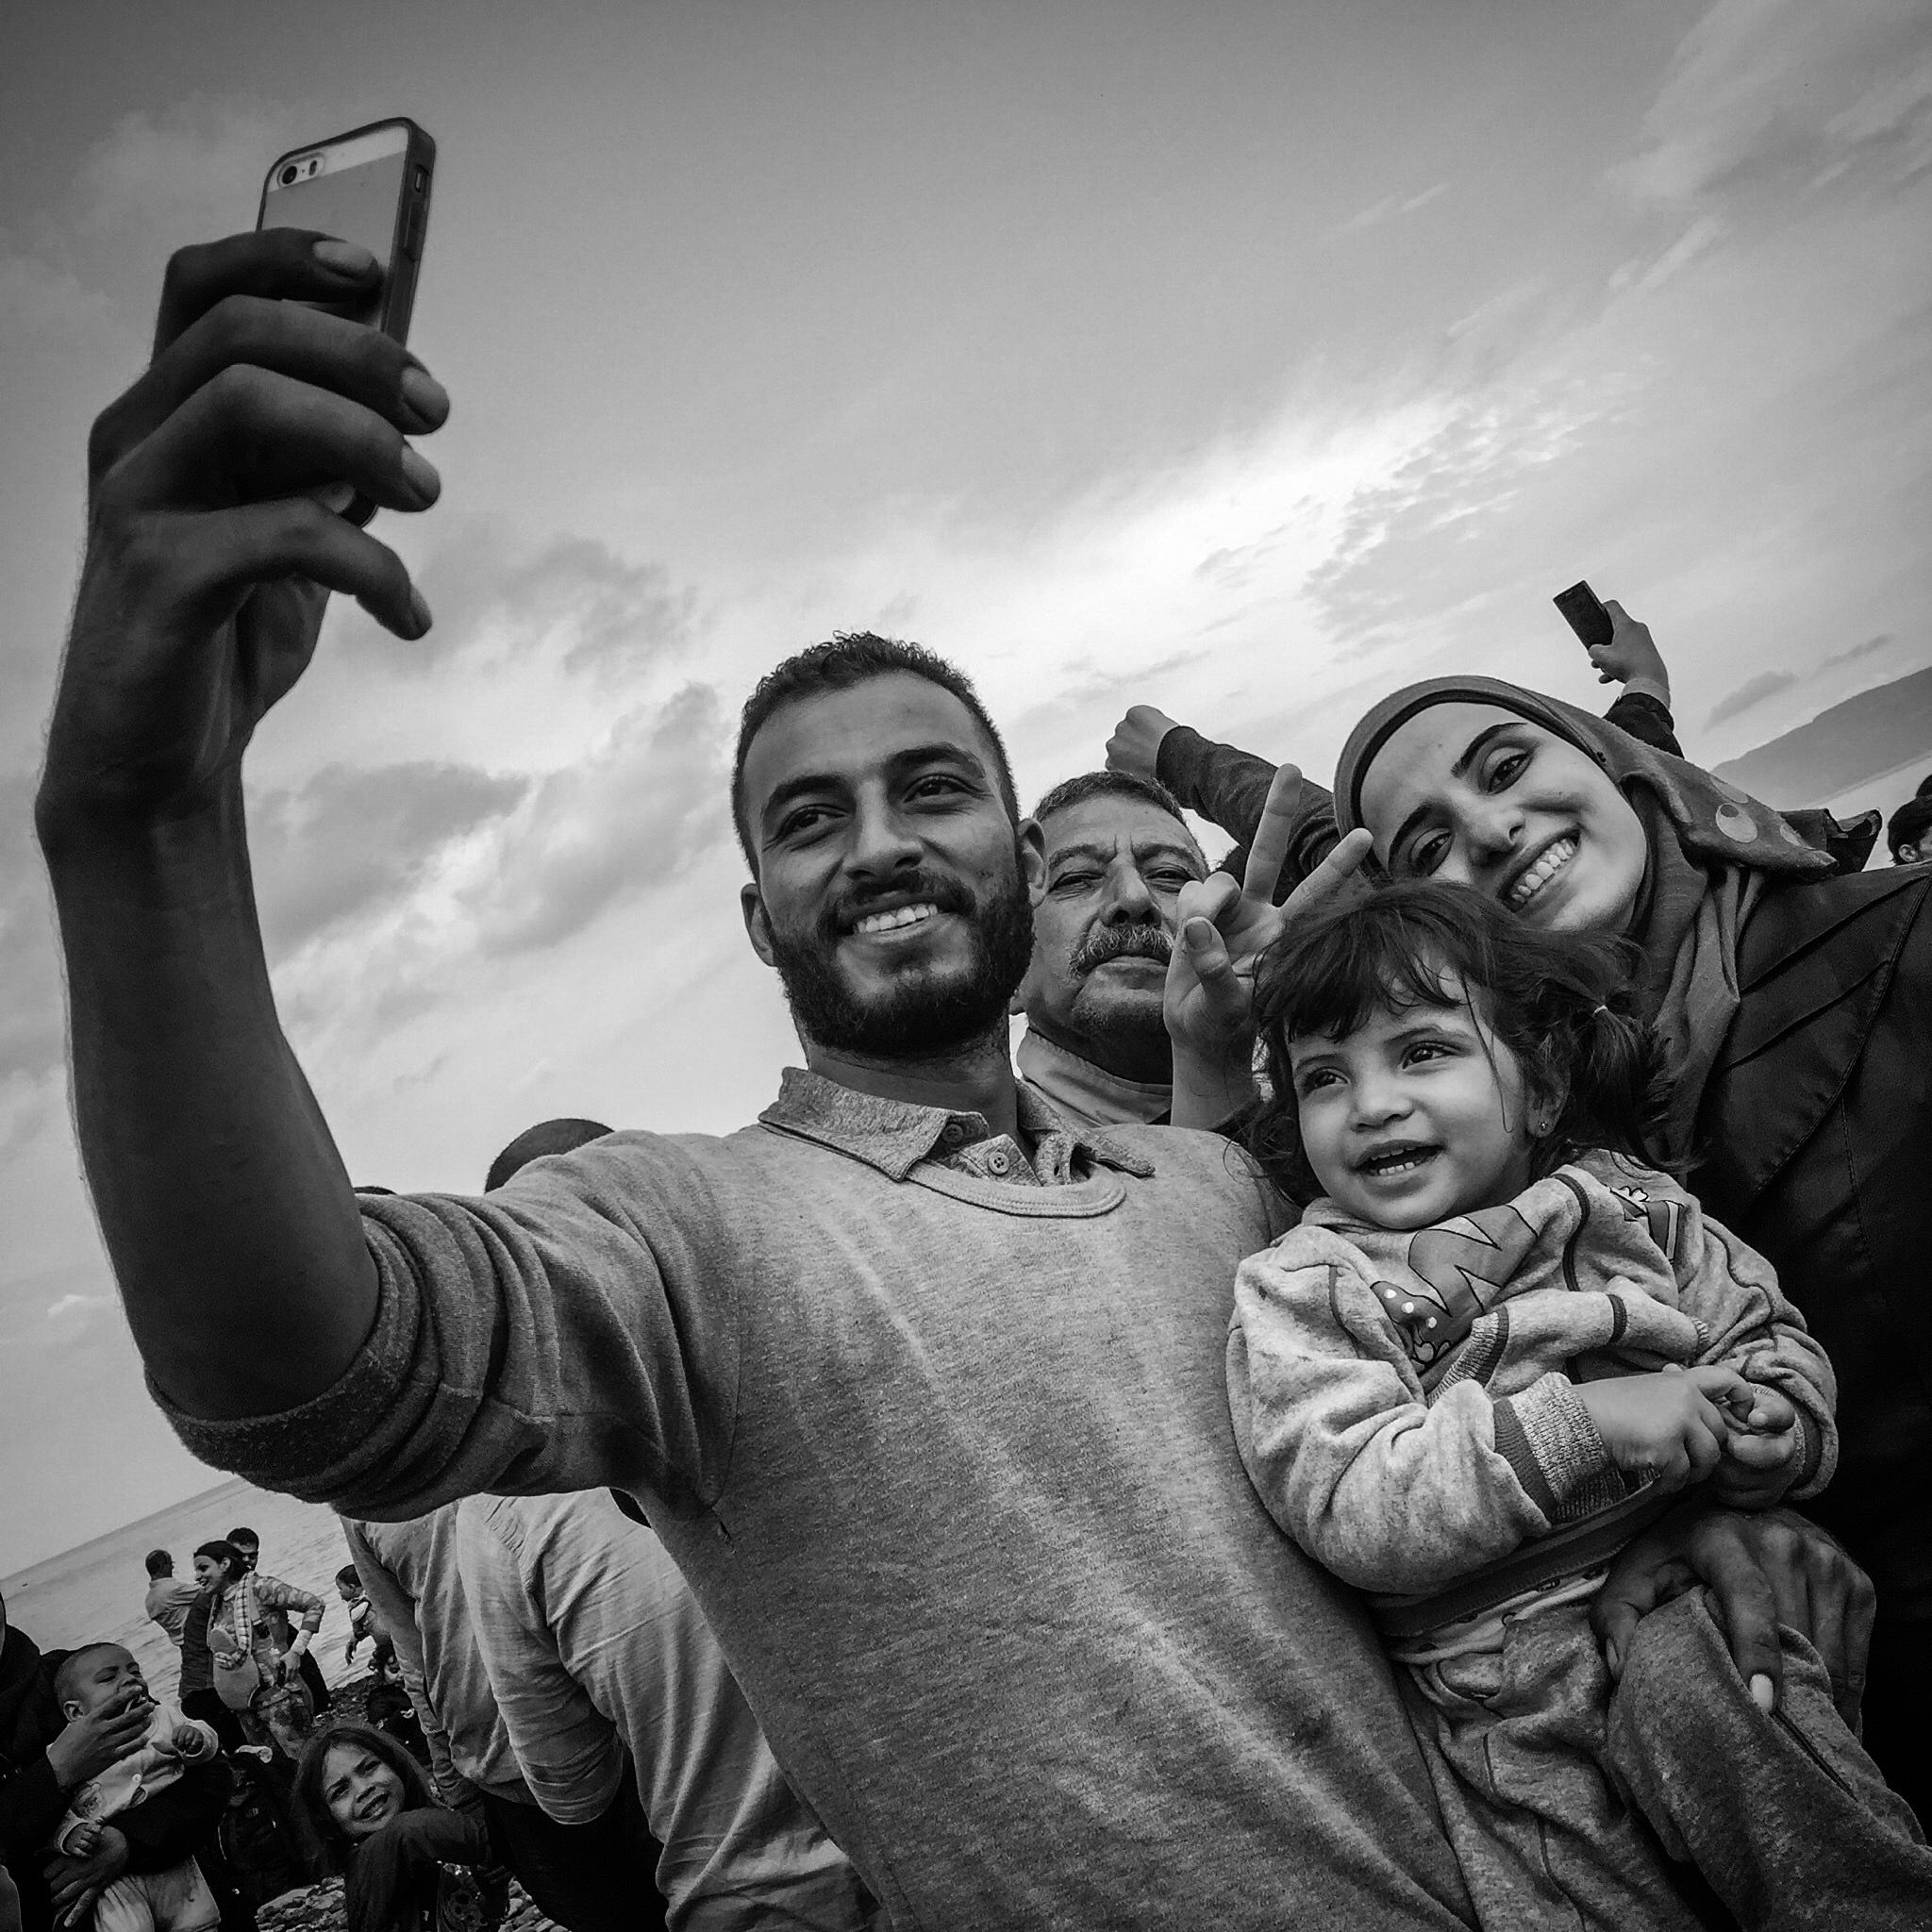 Refugees take a selfie after arriving on the island of Lesbos in Greece.